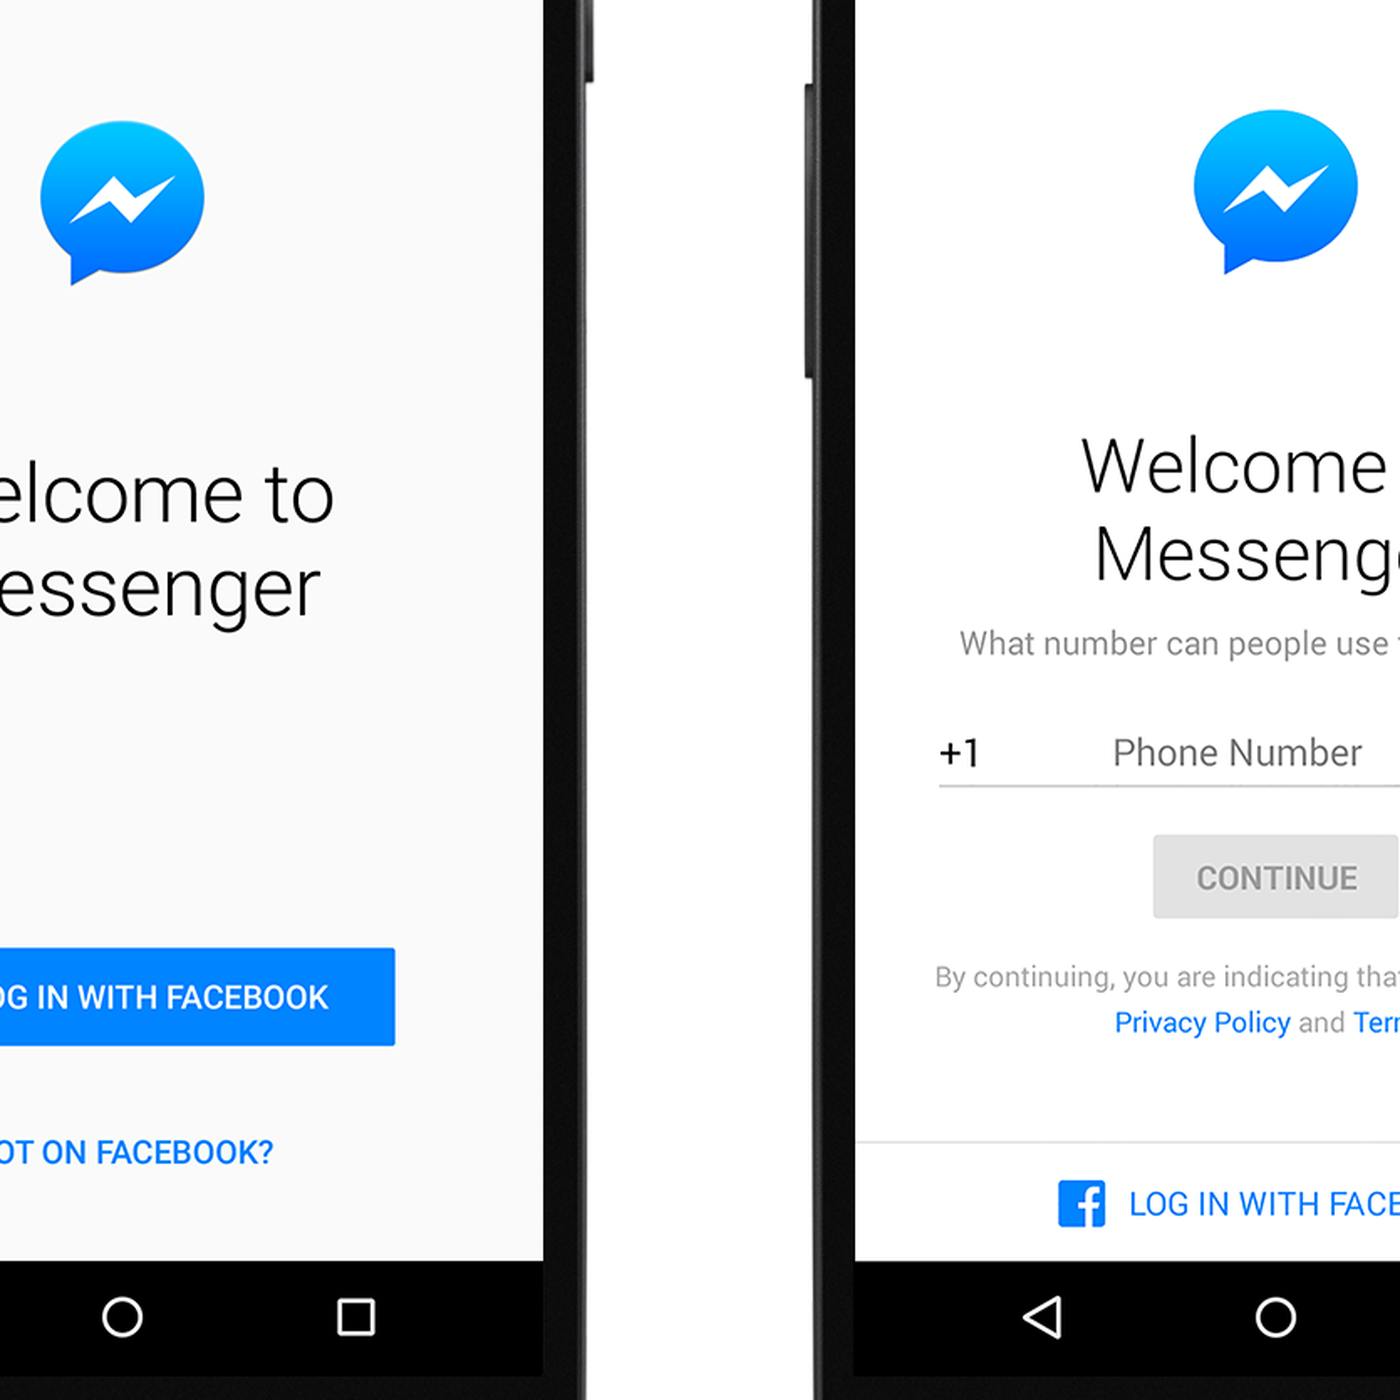 Now you can sign up for Facebook Messenger without a